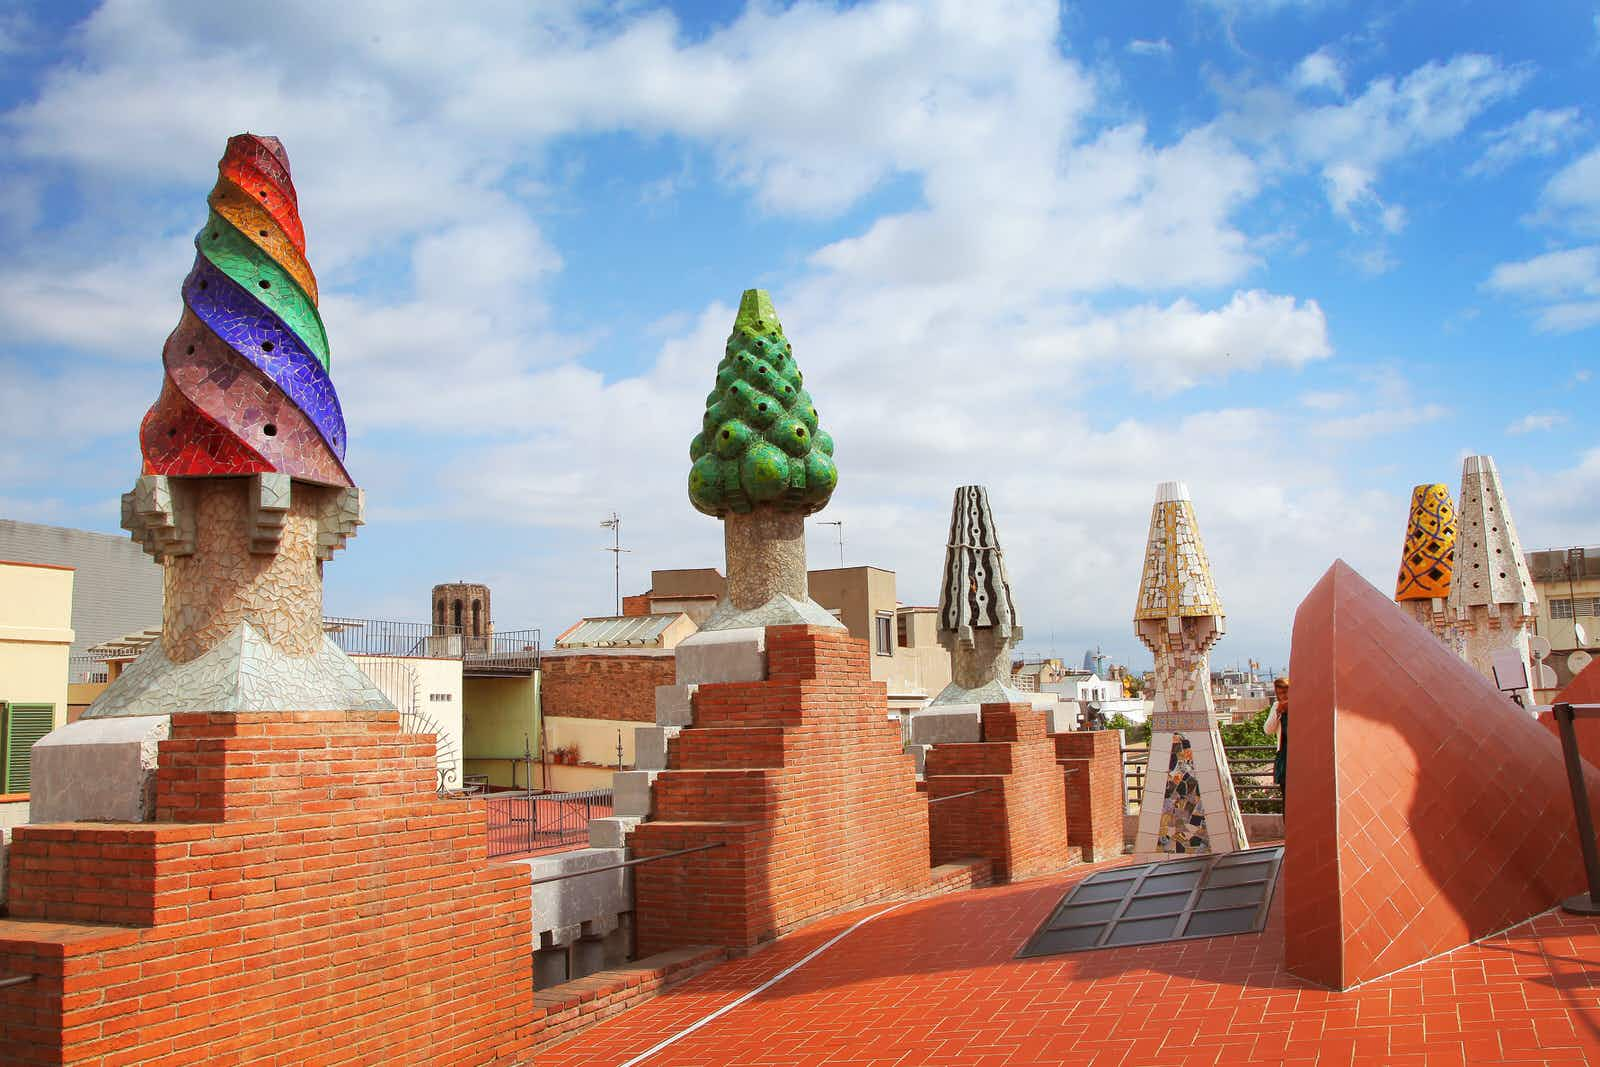 The mosaic chimneys on the roof of Palau Güell © Lisa A / Shutterstock